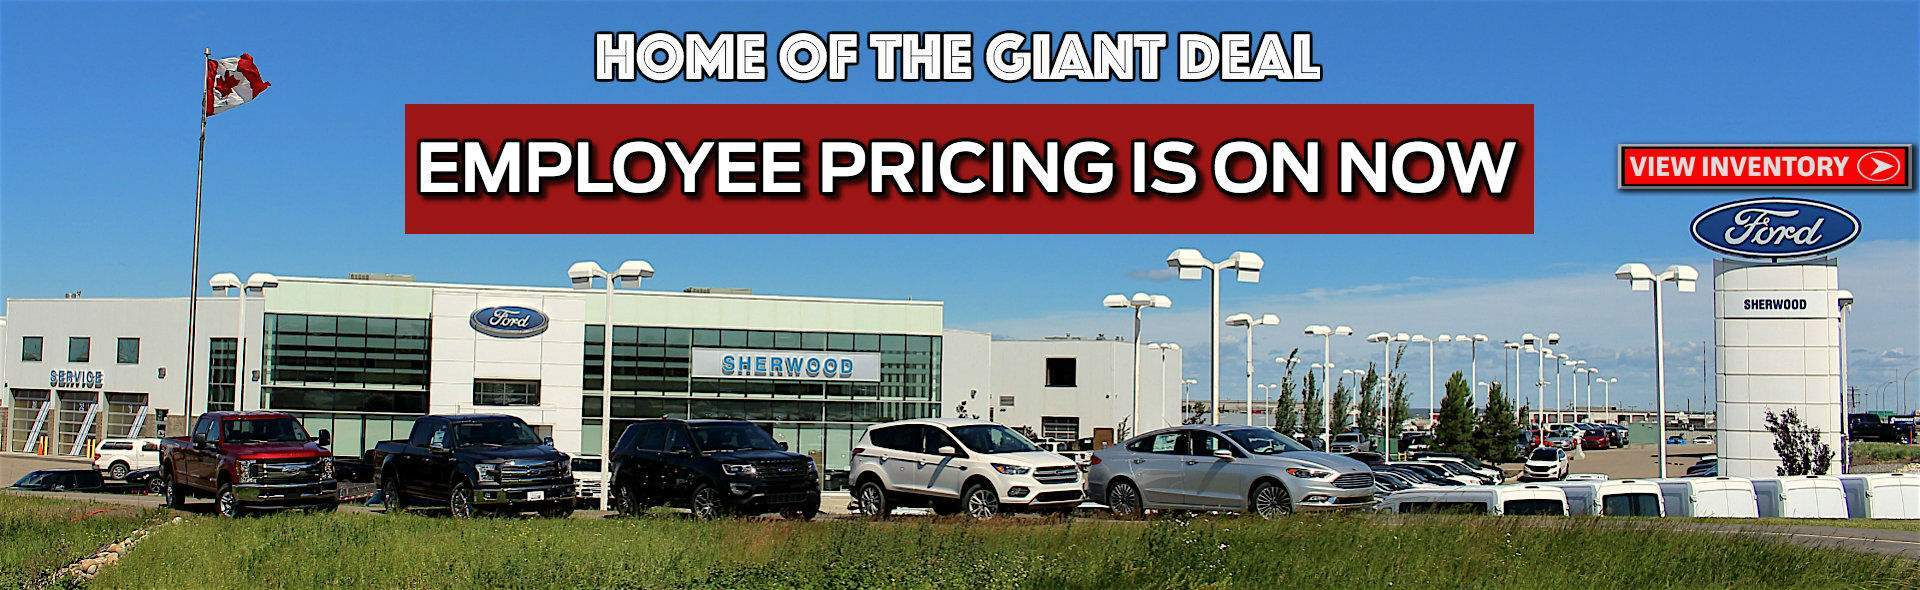 Sherwood Ford Ford Canada Employee Pricing